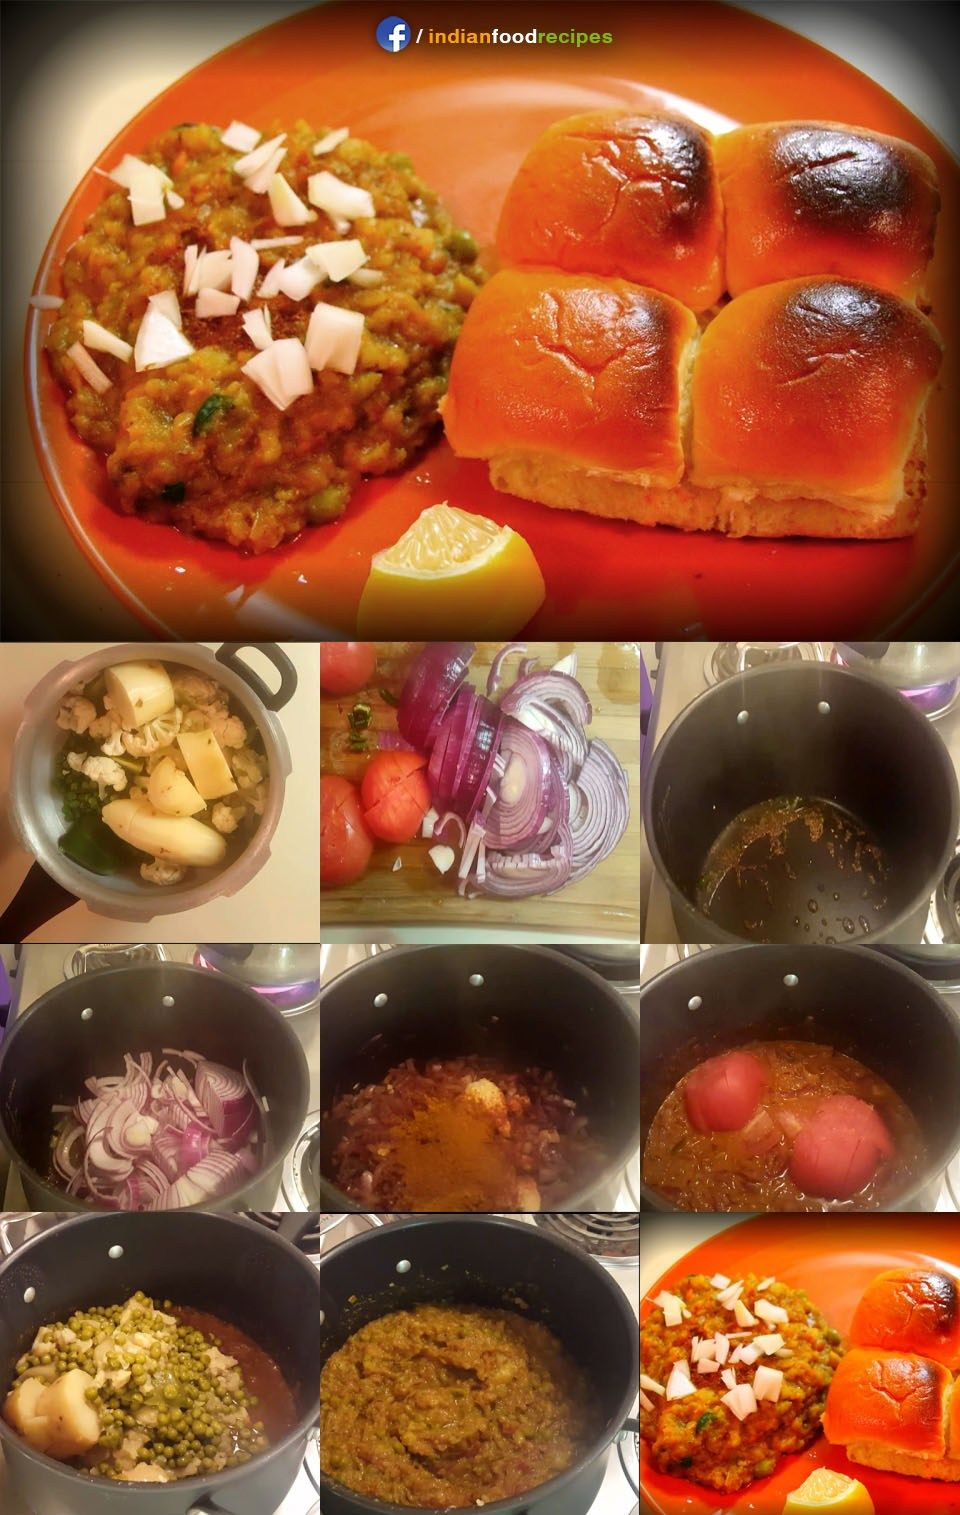 Healthy pav bhaji recipe step by step pav bhaji is an indian dish healthy pav bhaji recipe step by step pav bhaji is an indian dish made with vegetables and spices vegetables are boiled with salt forumfinder Image collections